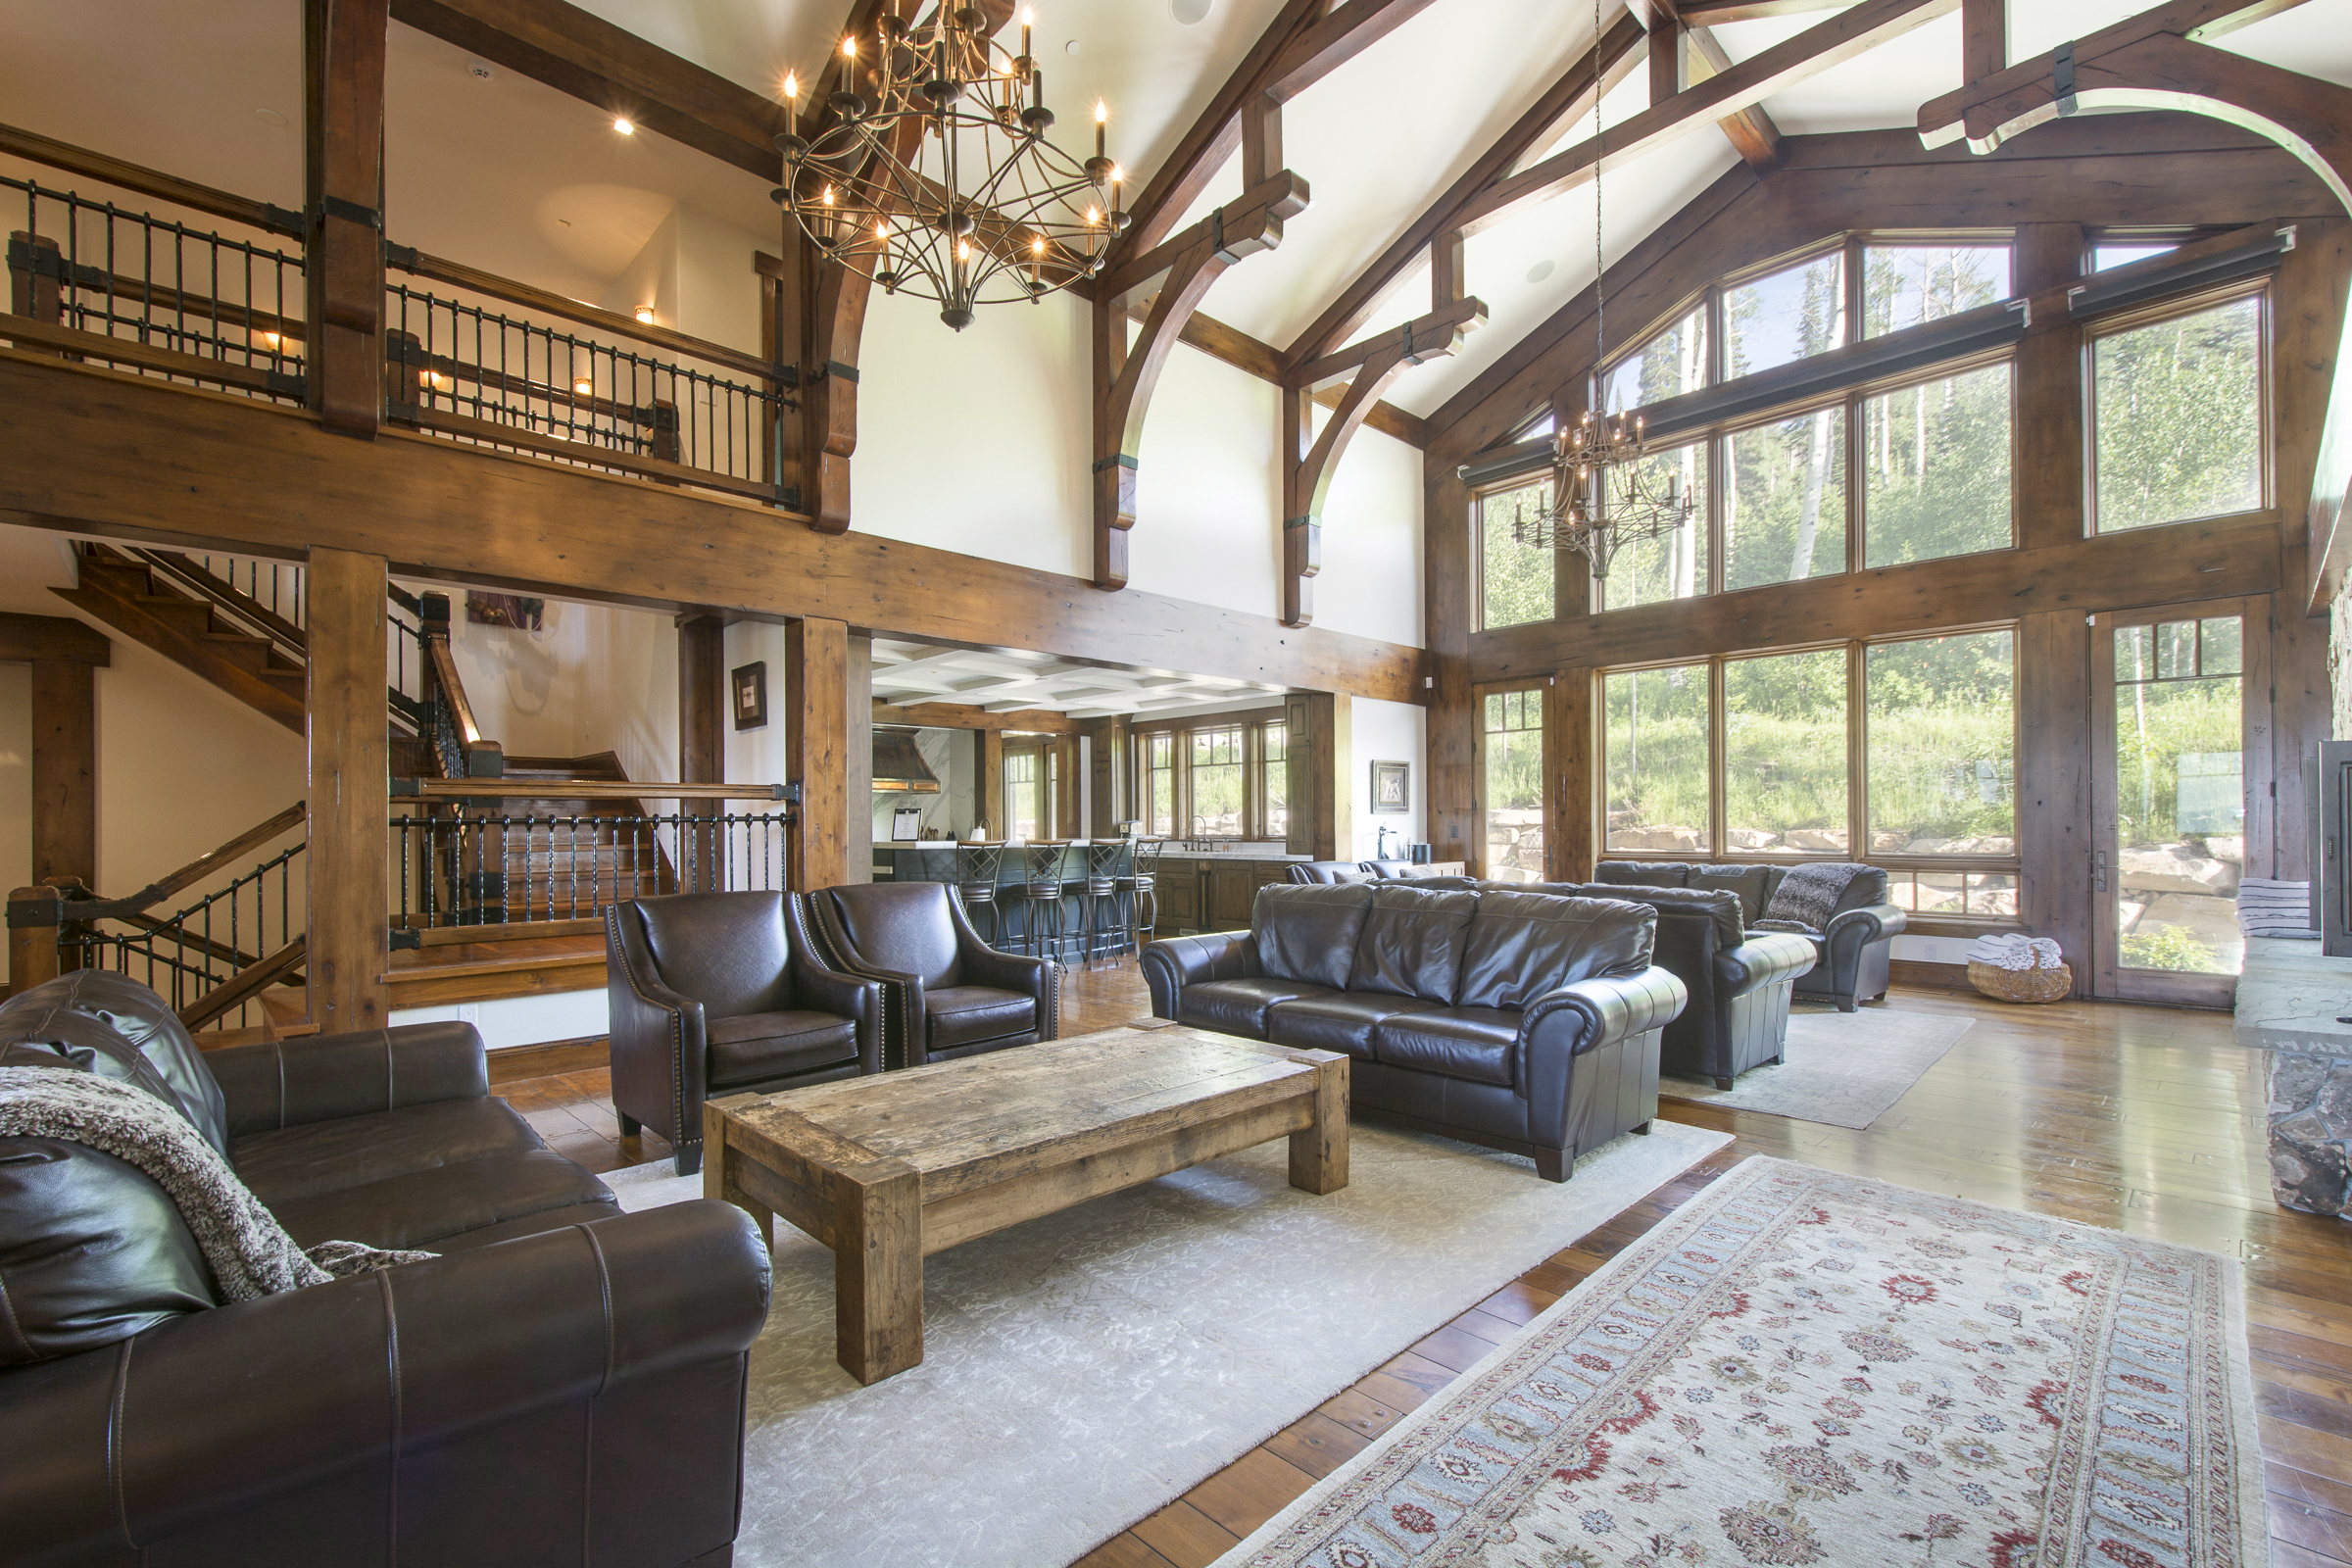 Luxury ski-in/ski-out vacation rental in Park City, UT